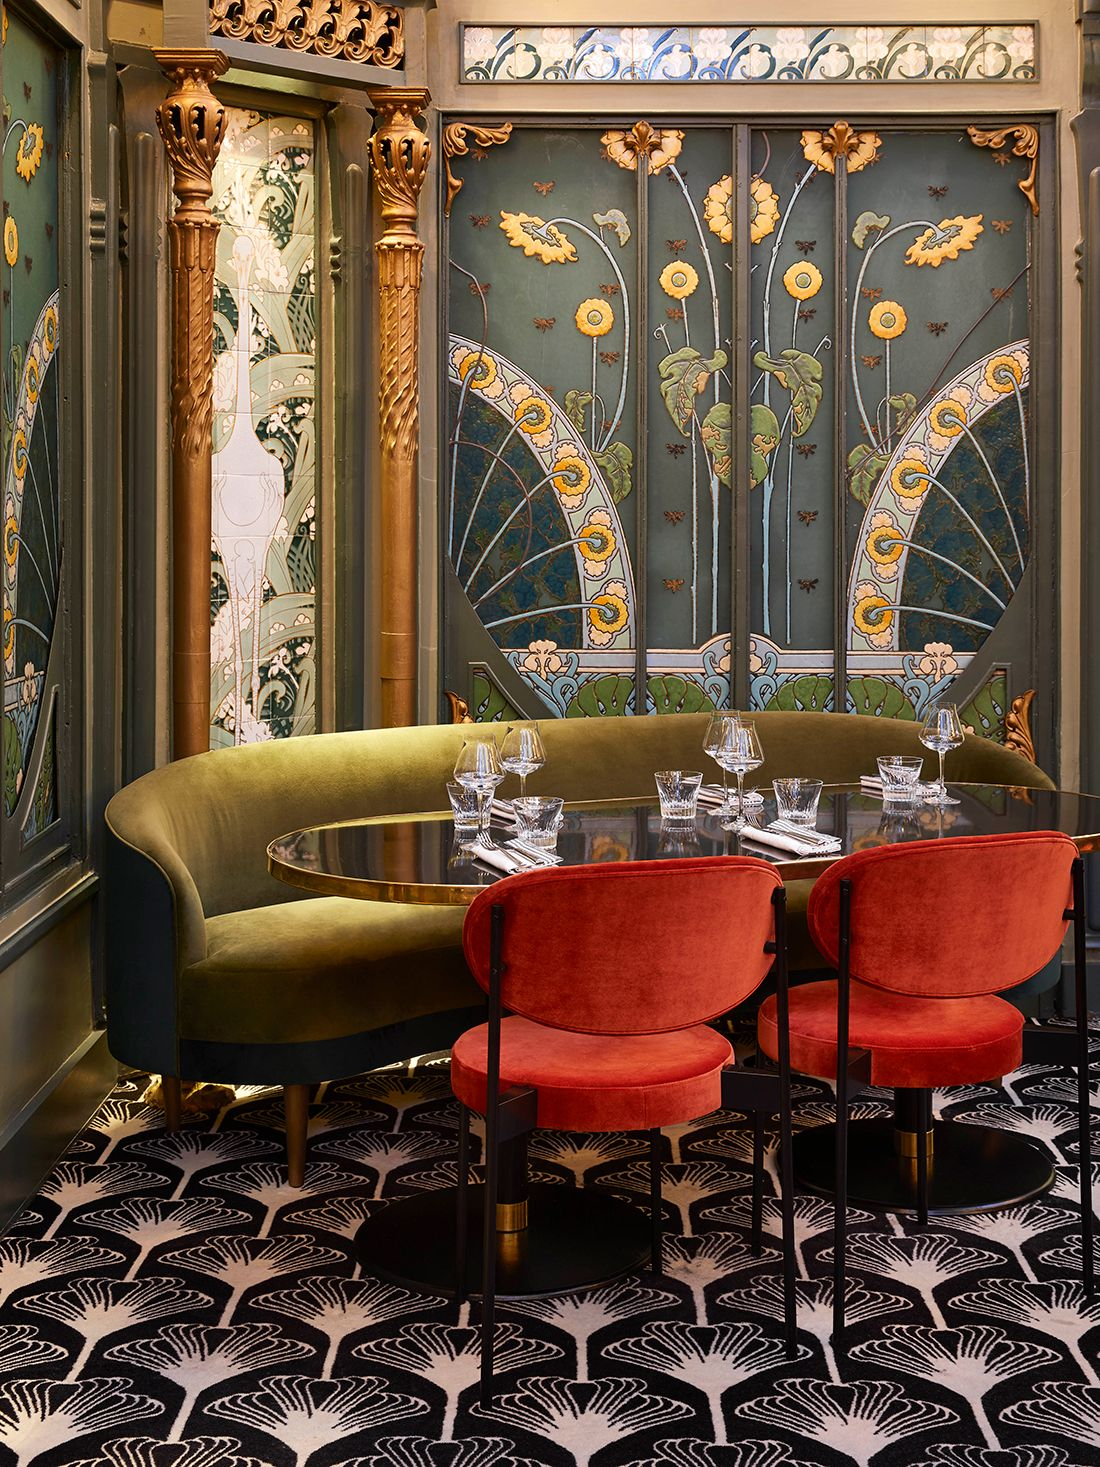 Art Nouveau Interior Design in Paris | DPAGES #artdecointerior